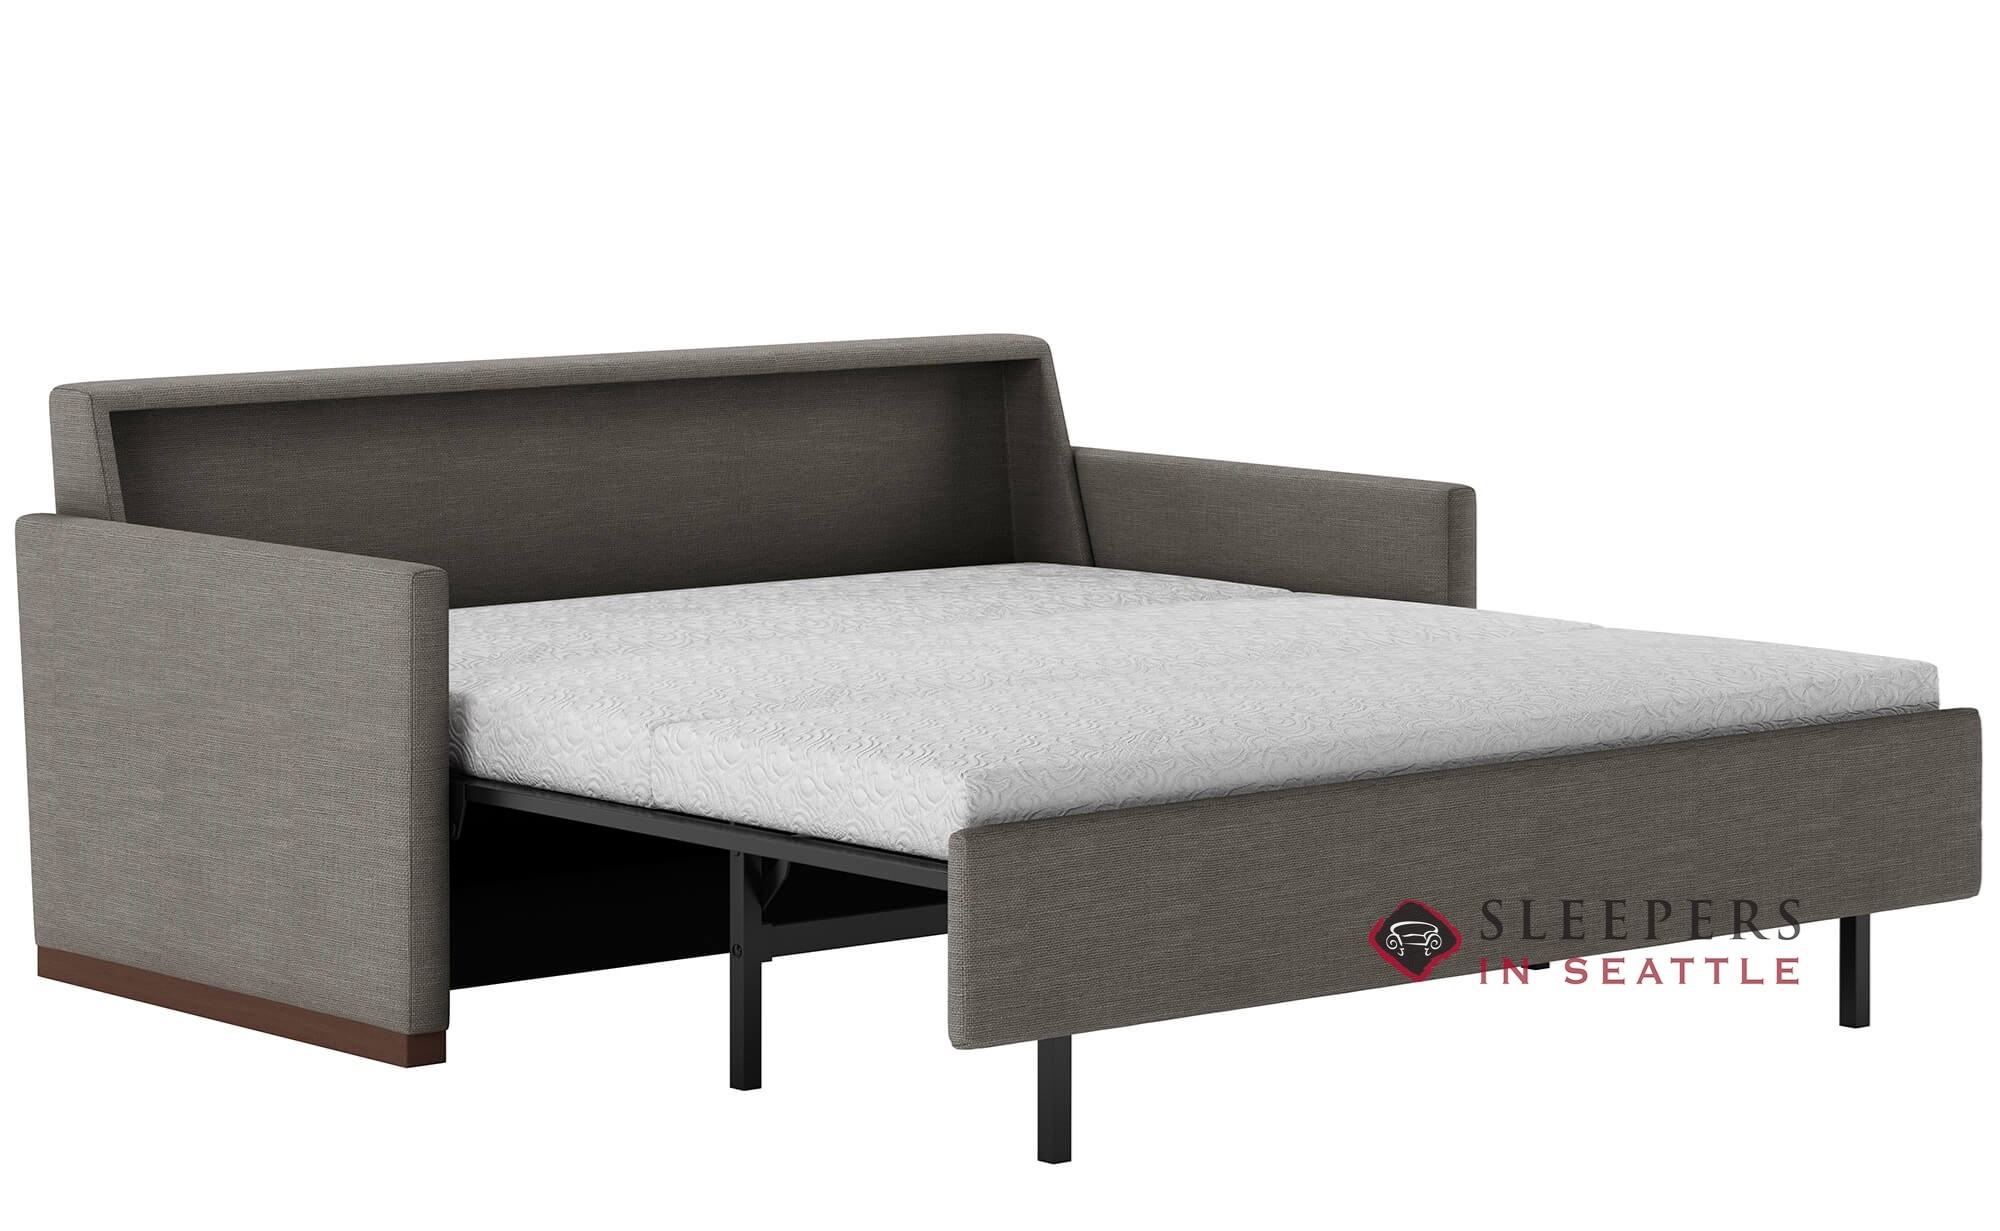 Customize And Personalize Pearson Queen Fabric Sofa By American Leather Queen Size Sofa Bed